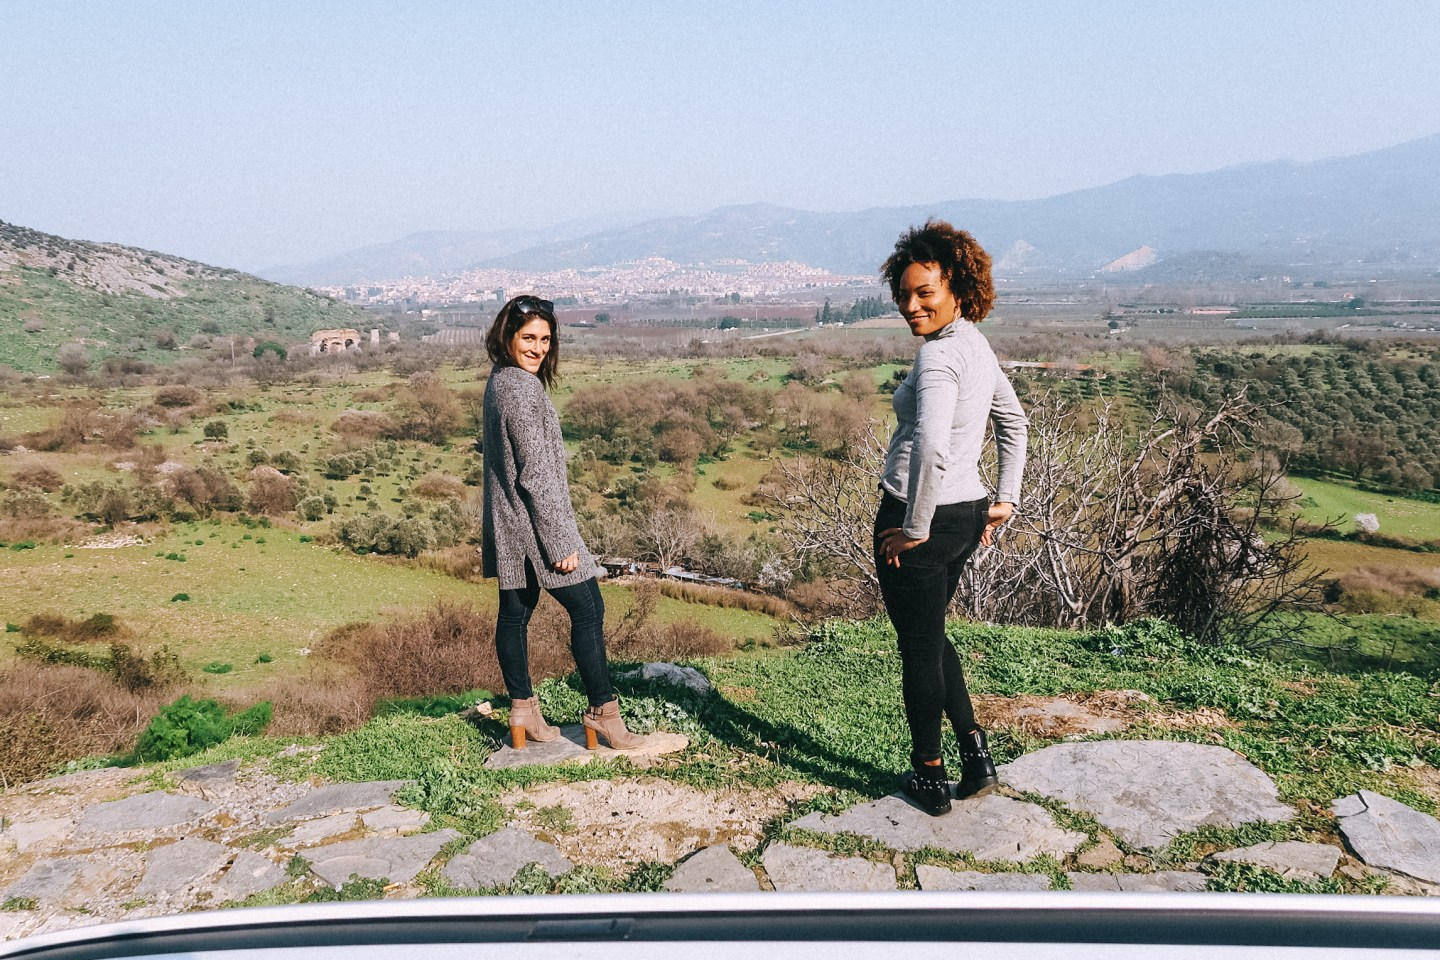 Illustrated by Sade - My girl friend and I posing for a photo in front of a view of the countryside of Ephesus, Turkey